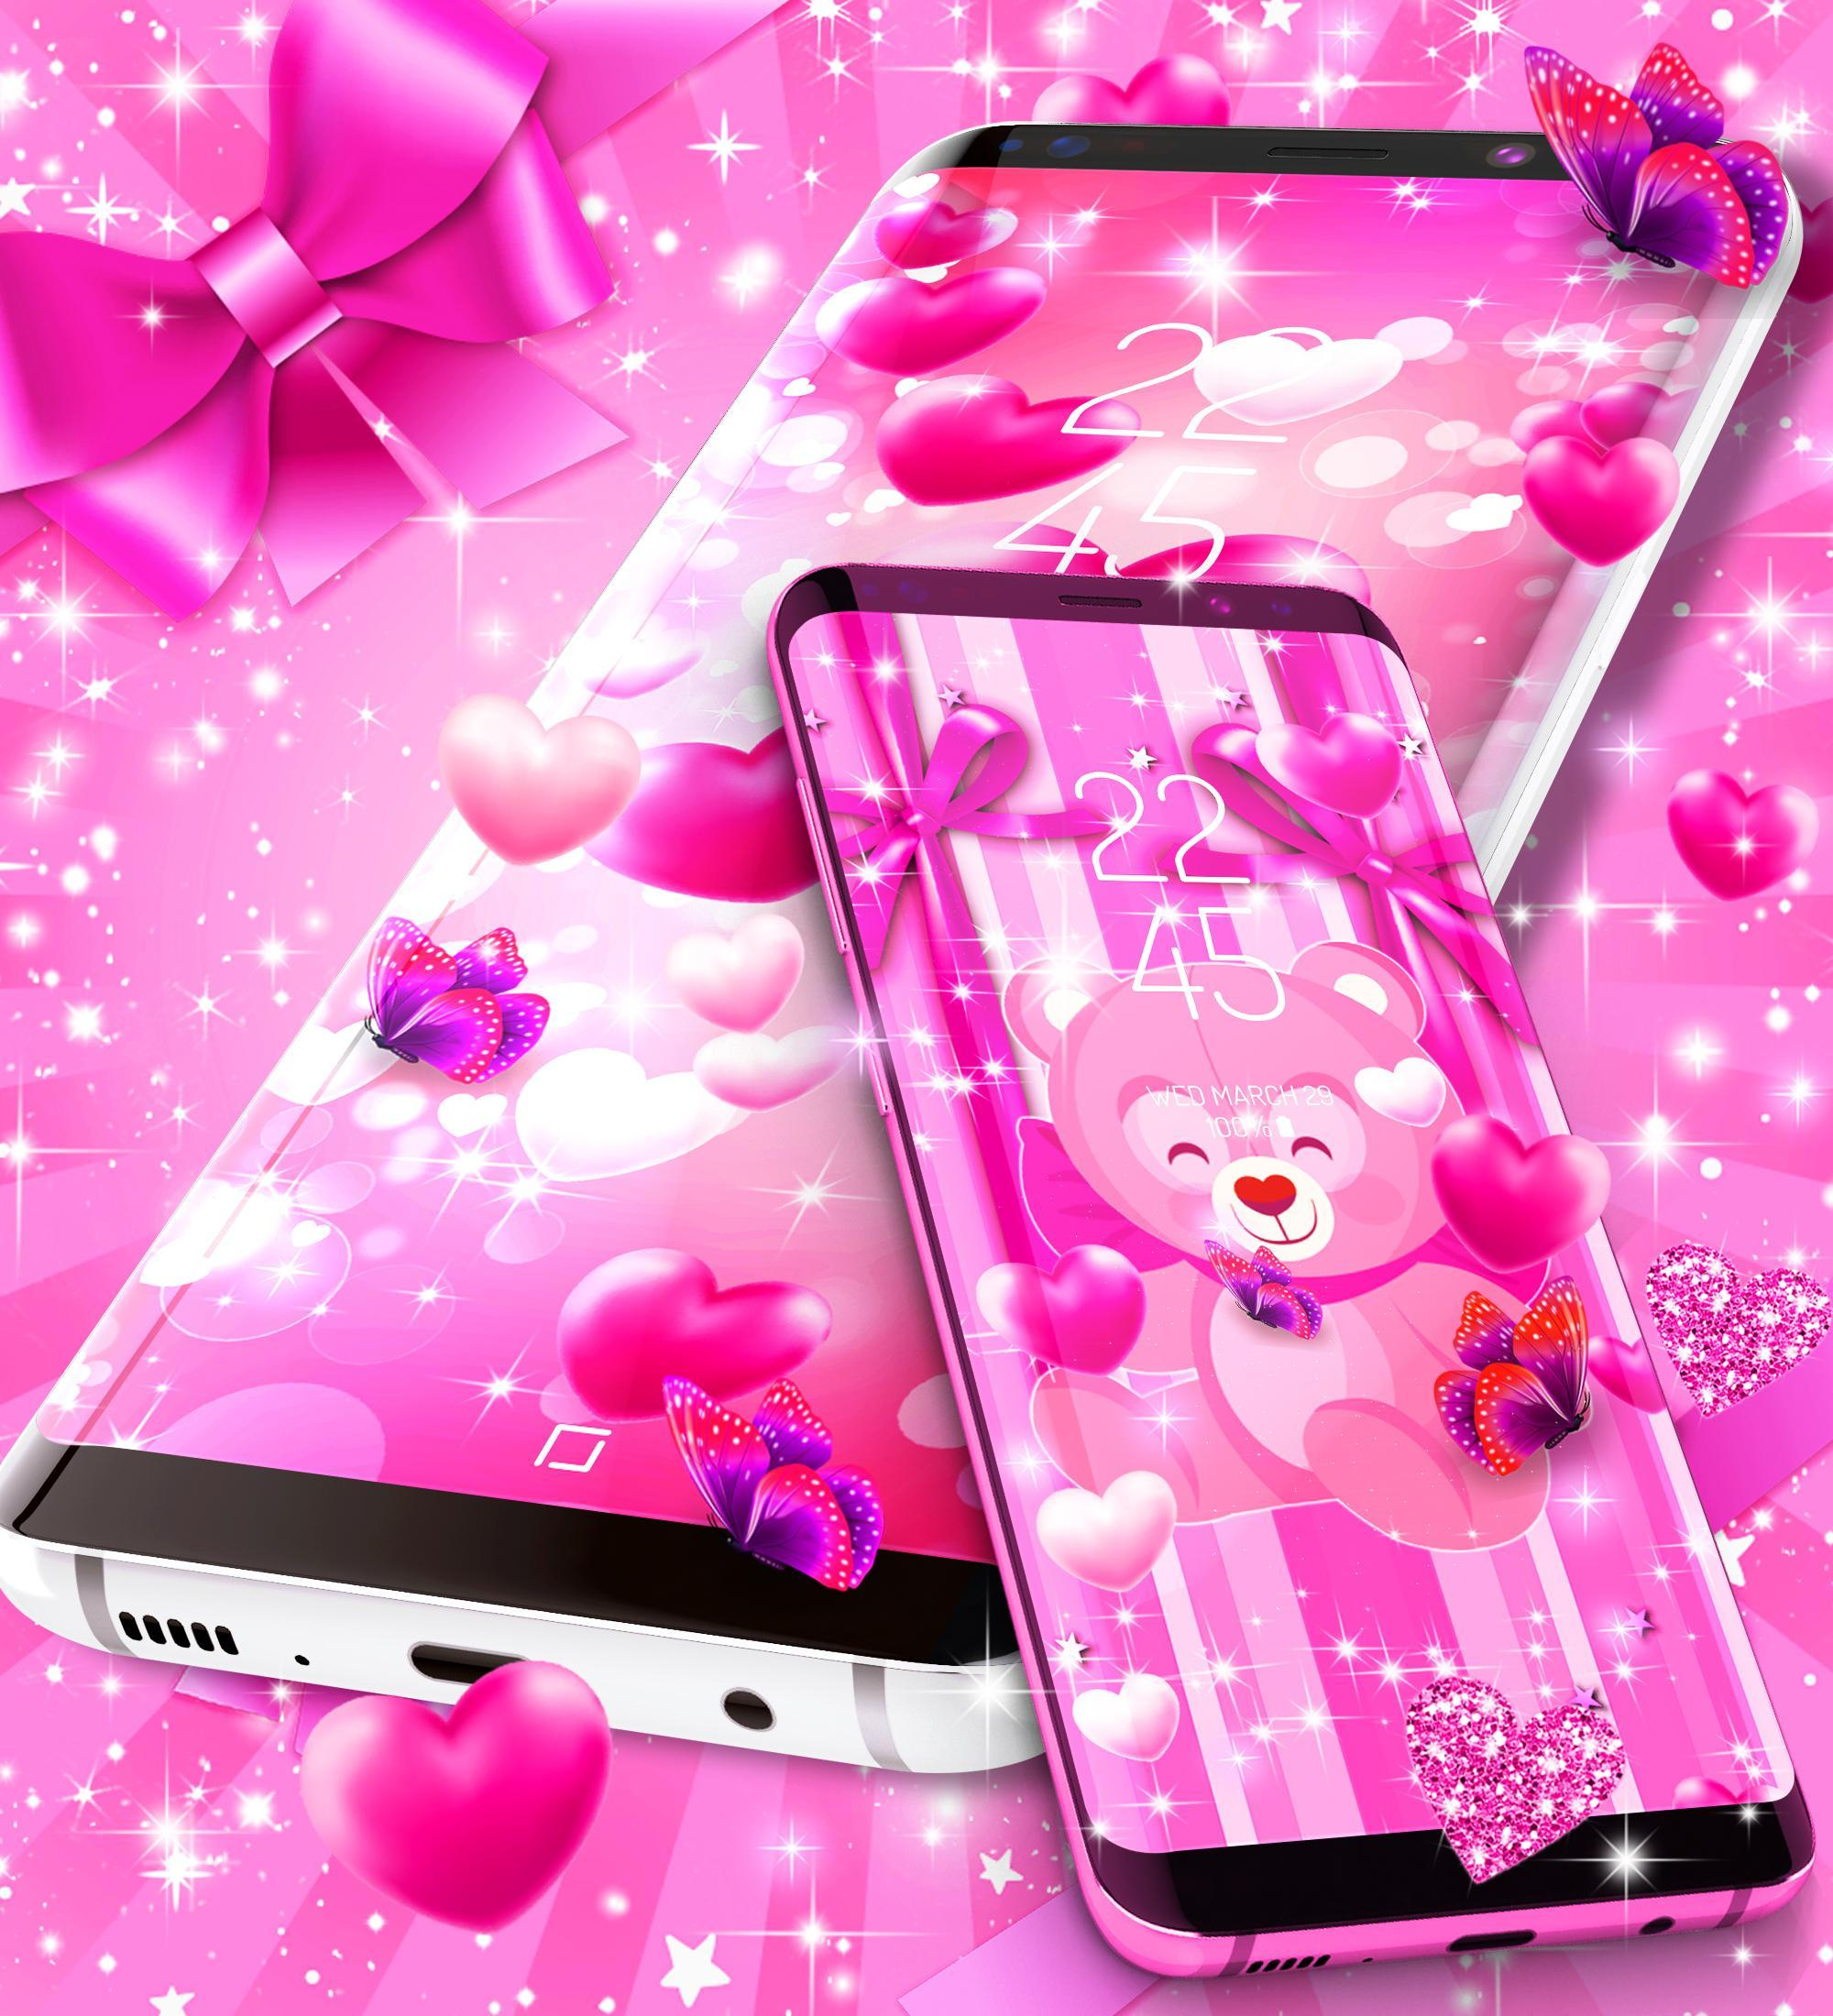 2020 lovely pink live wallpaper for Android   APK Download 2000x2200